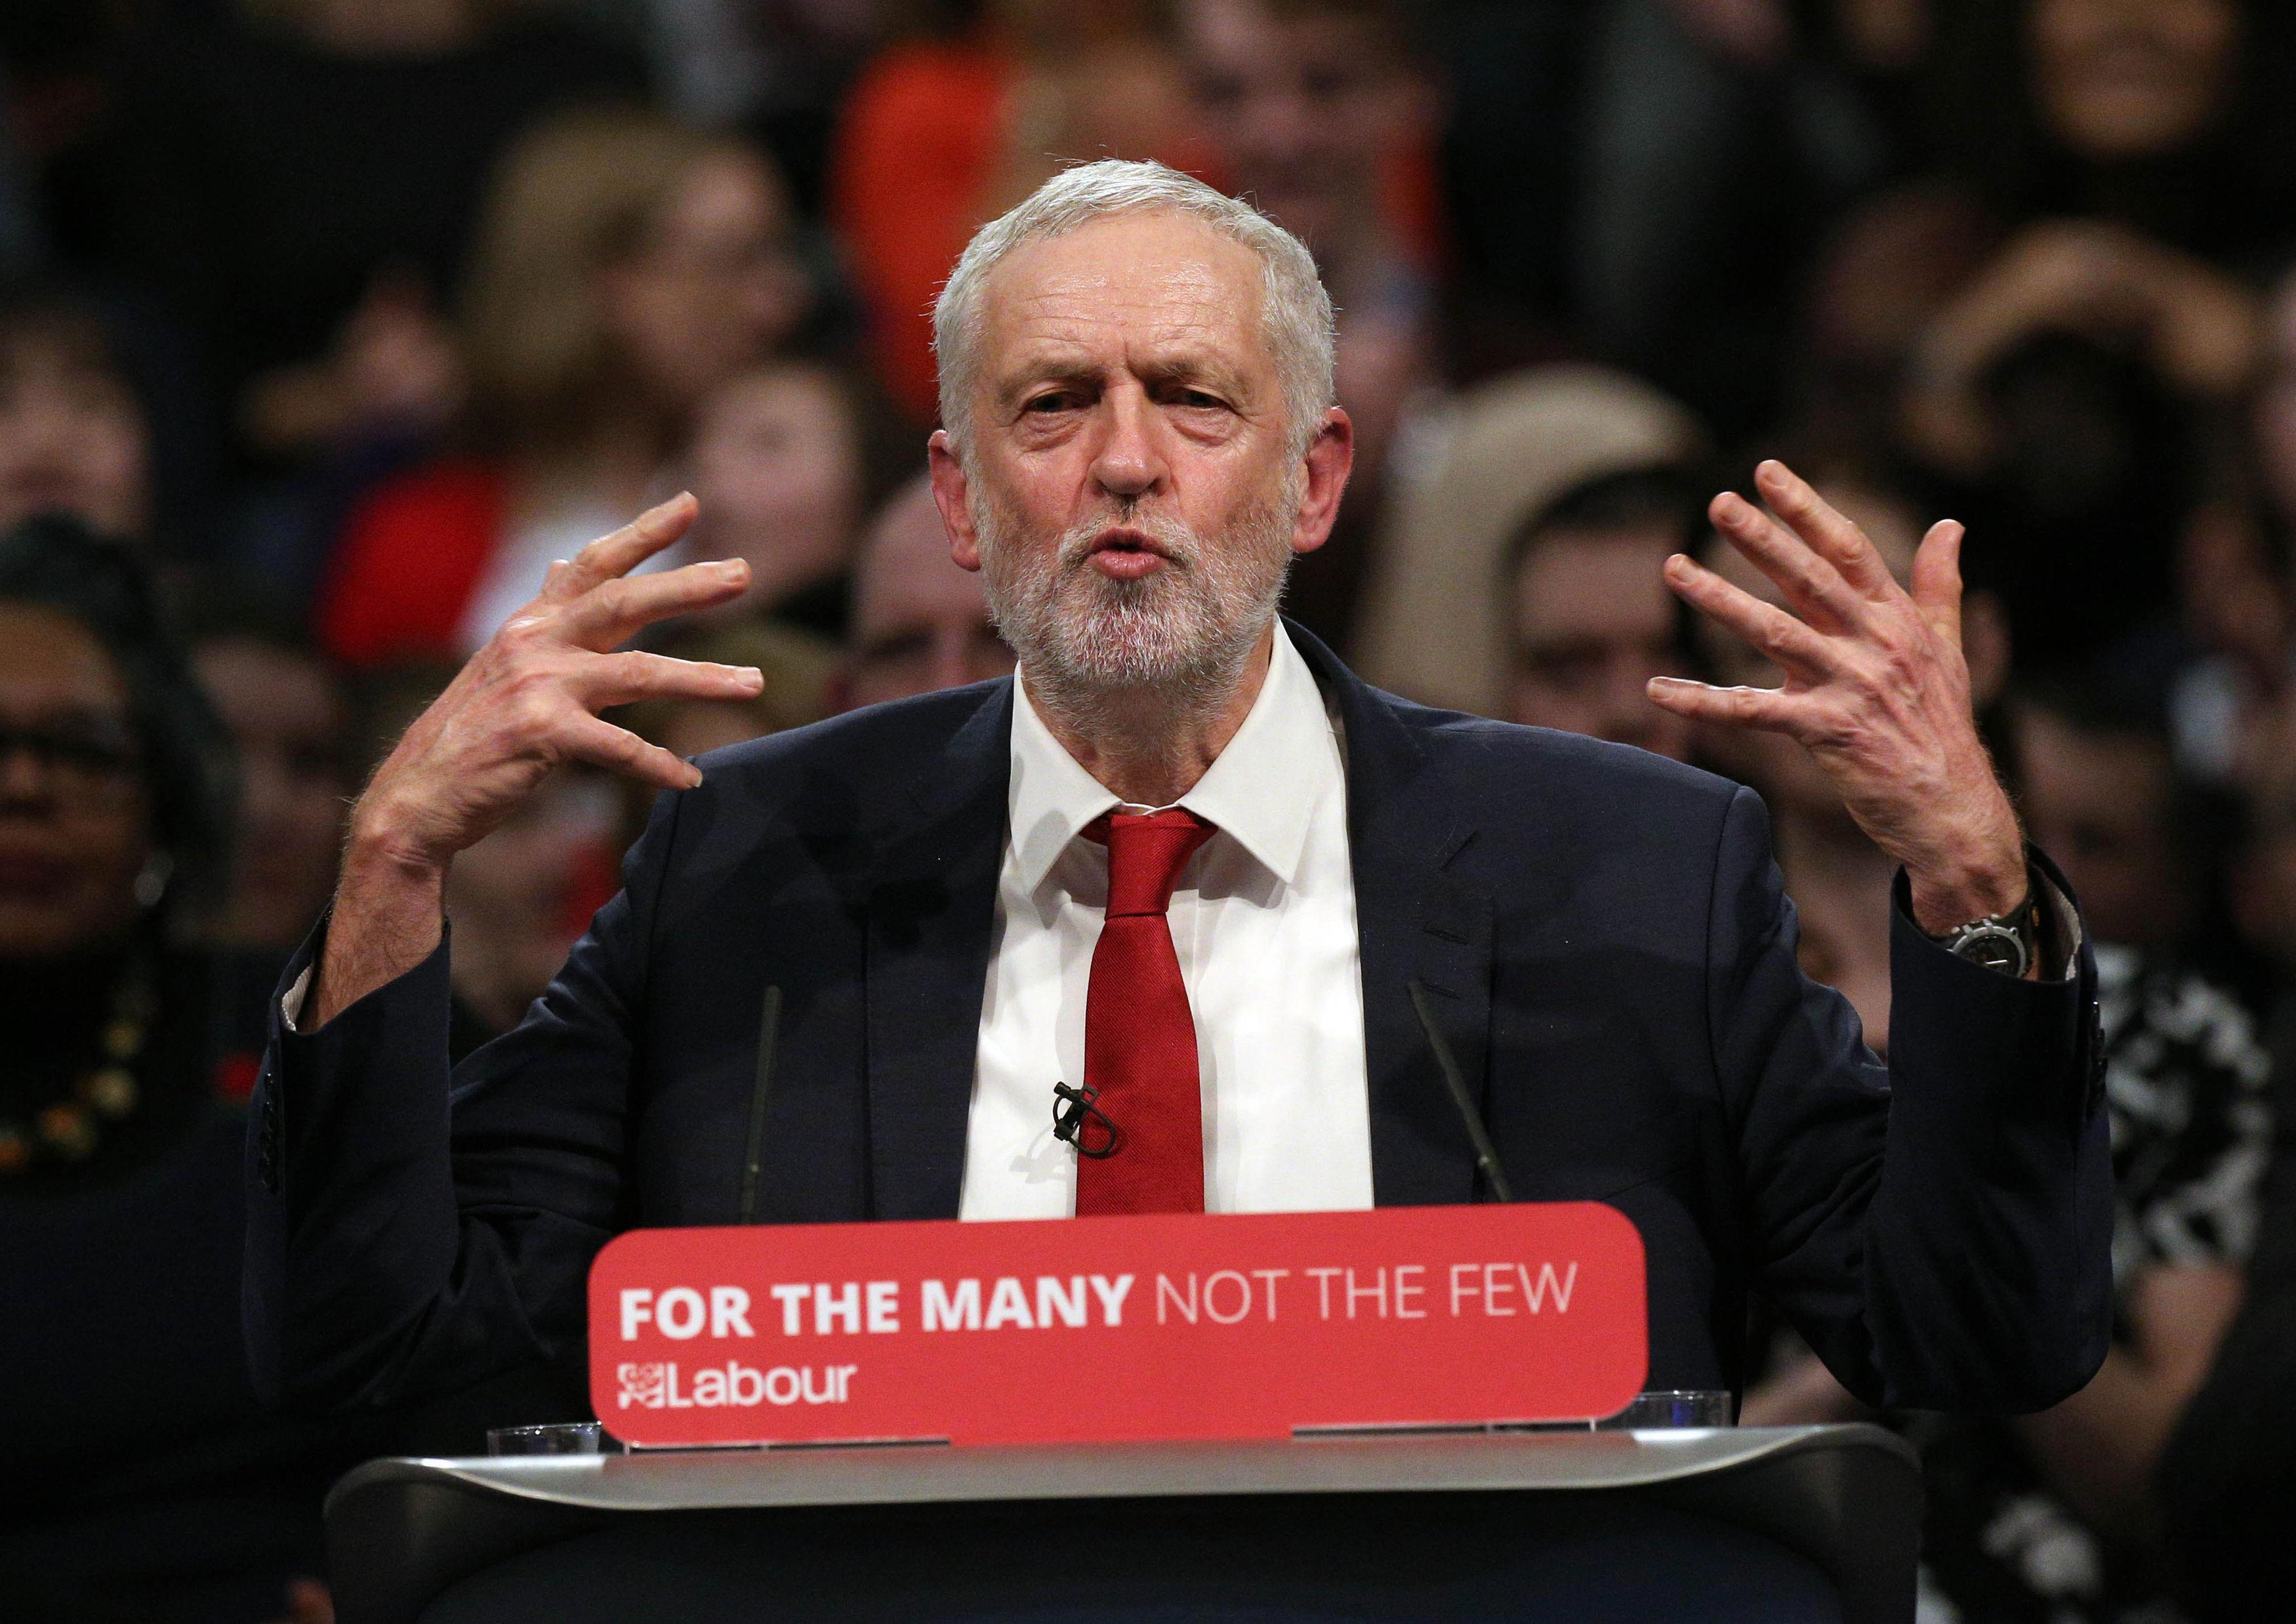 e700d9baf27e919a17695aee4d27f0b4 Jeremy Corbyn will deliver a speech at the UN accusing the UK of being 'complicit' in human rights abuse